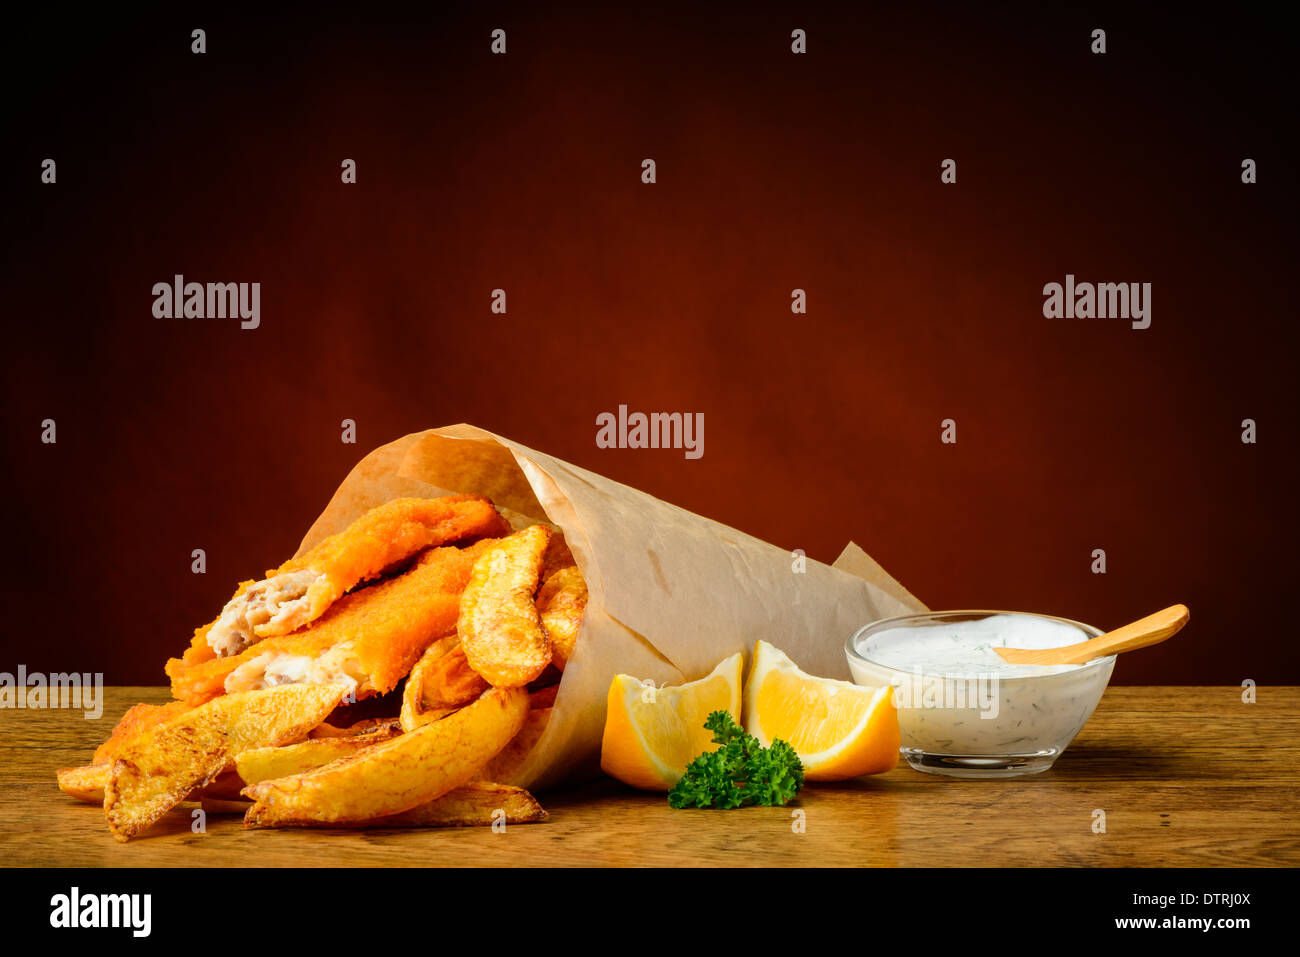 still life with traditional fish and chips menu, lemons and dip sauce - Stock Image